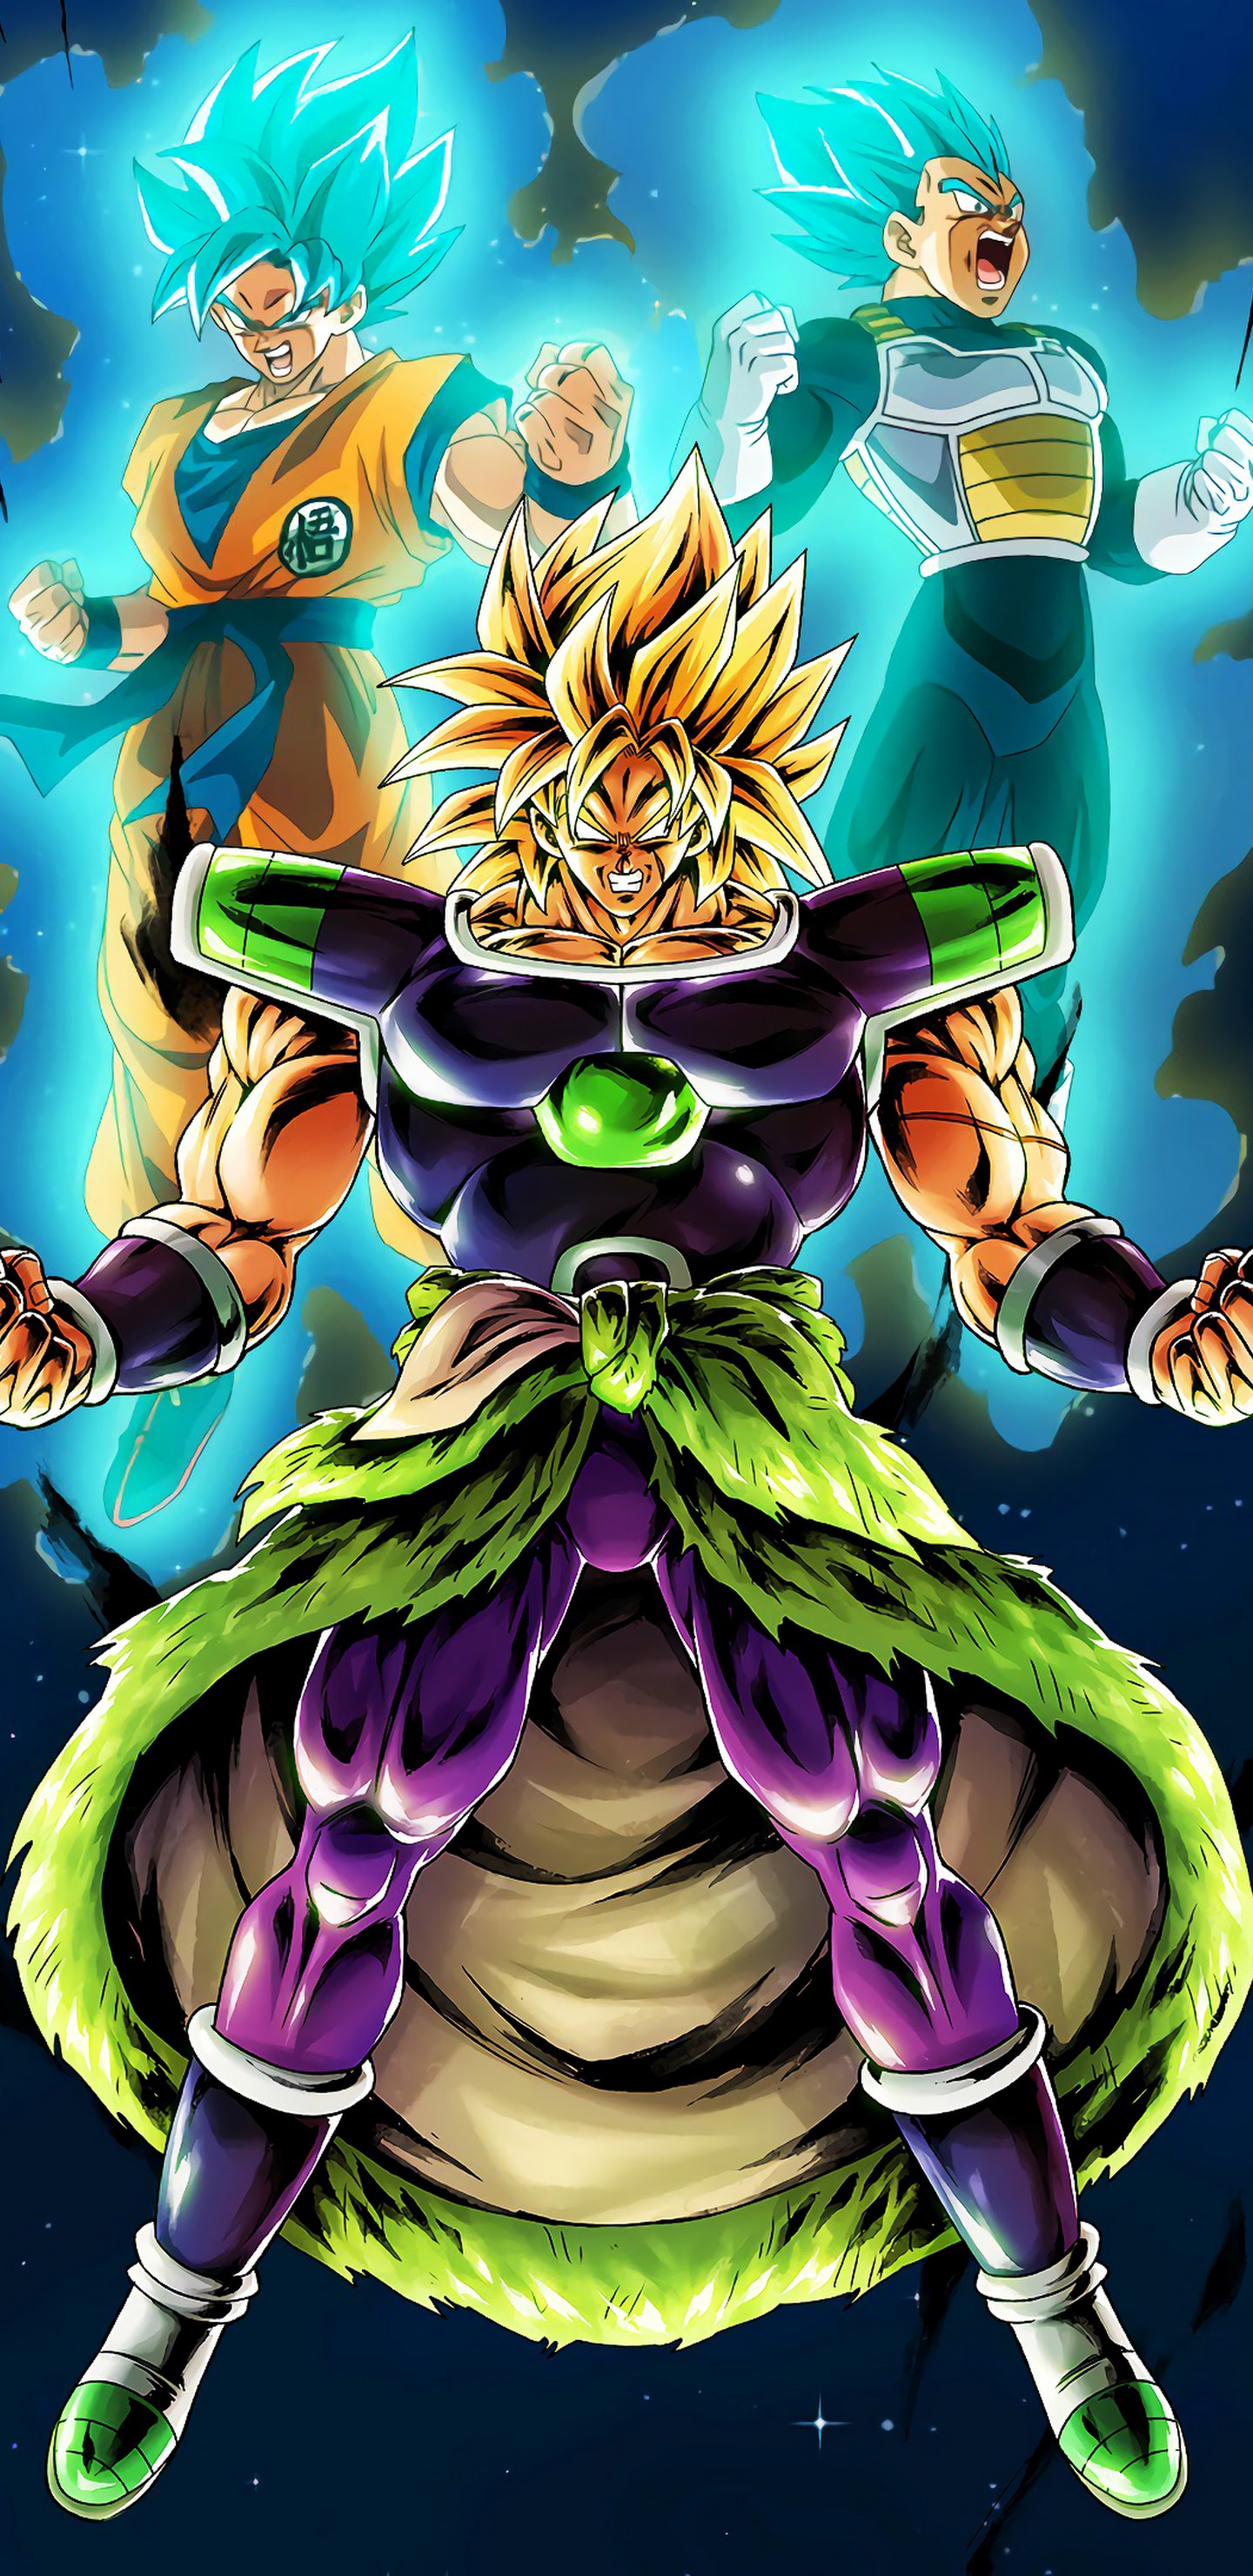 Broly Goku Vegeta Dragon Ball Super Broly 8k 7680x4320